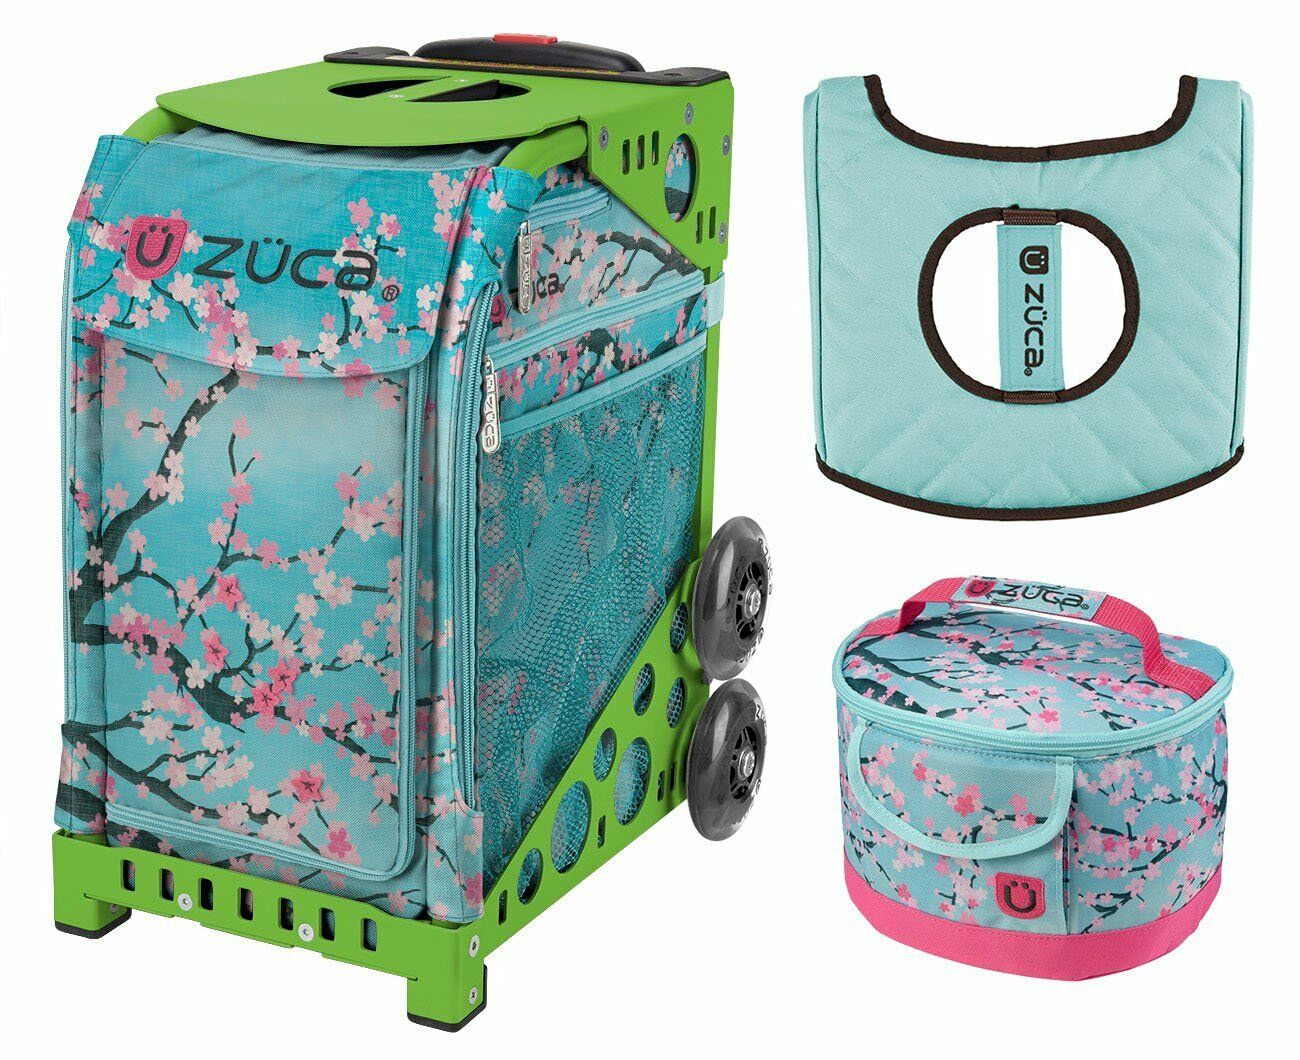 Zuca Sport Bag - Hanami with GIFT Lunchbox and Seat Cover (Green Frame)